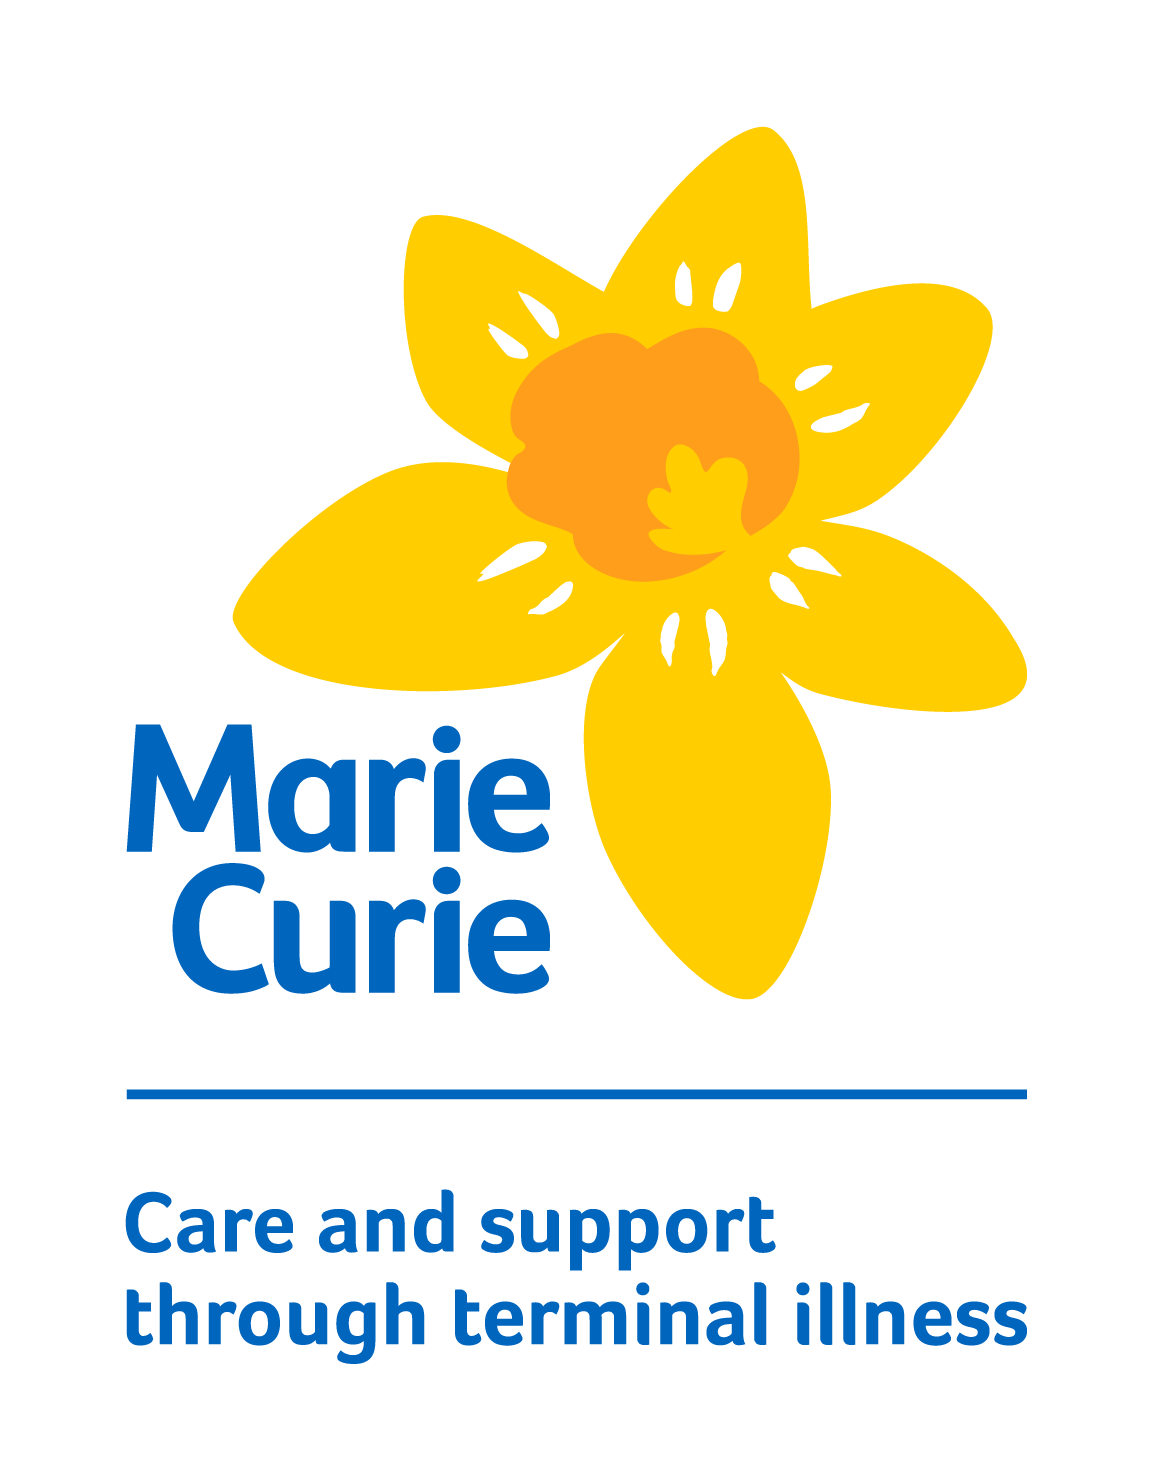 Concert for Marie Curie